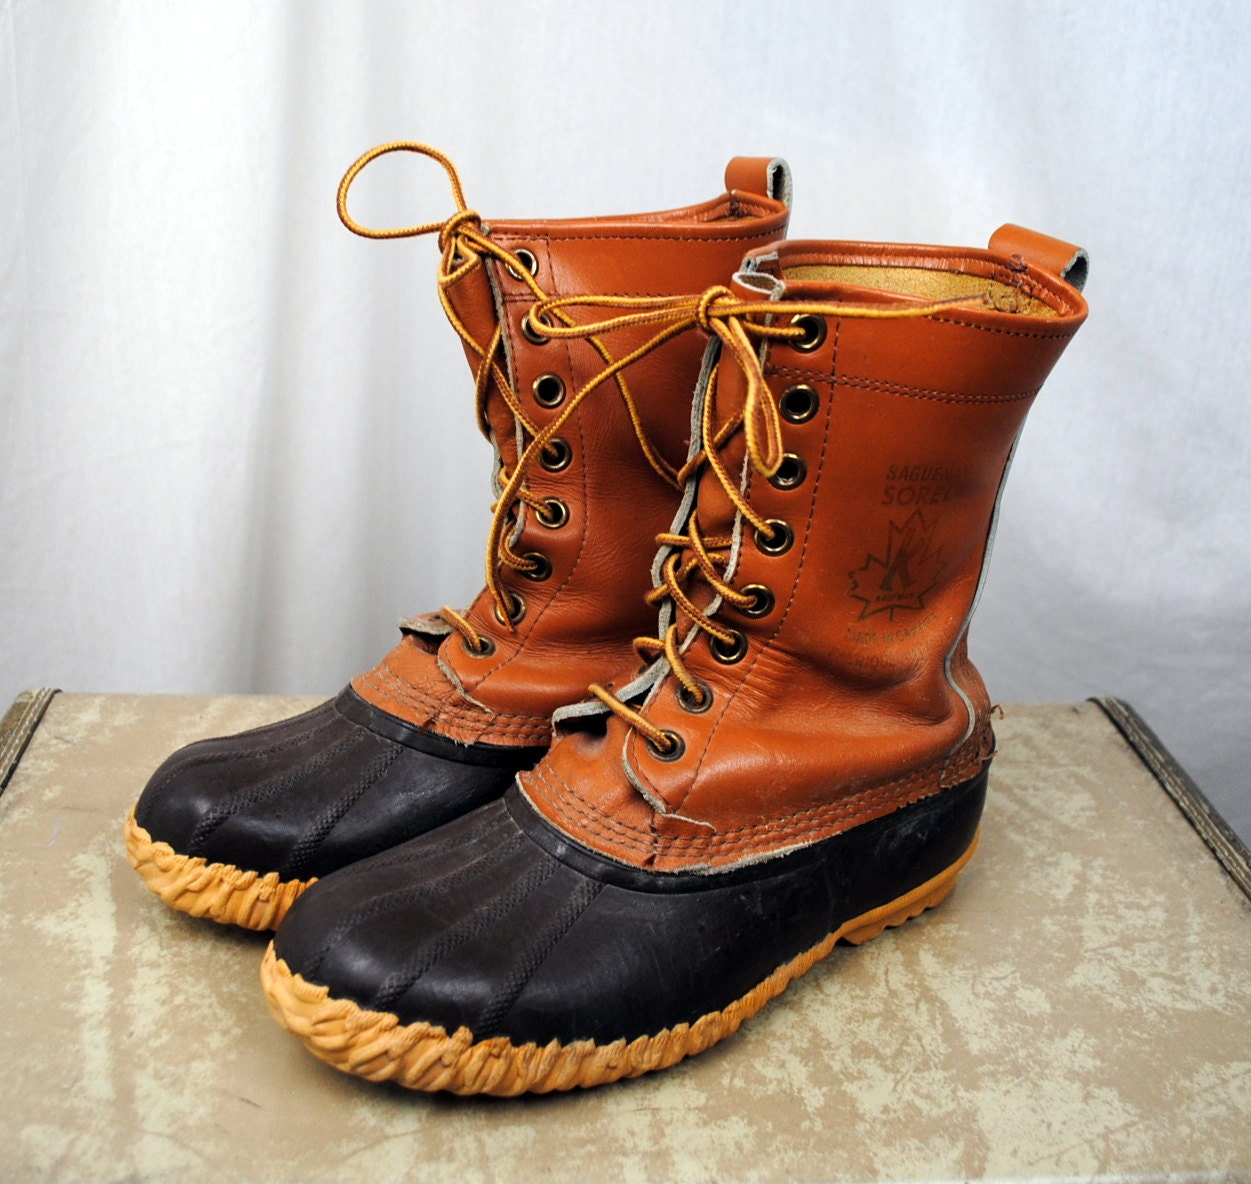 Popular Sperry Top-Sider Saltwater Duck Boot Tan/Navy Womens Leather Winter Boots NEW! | EBay